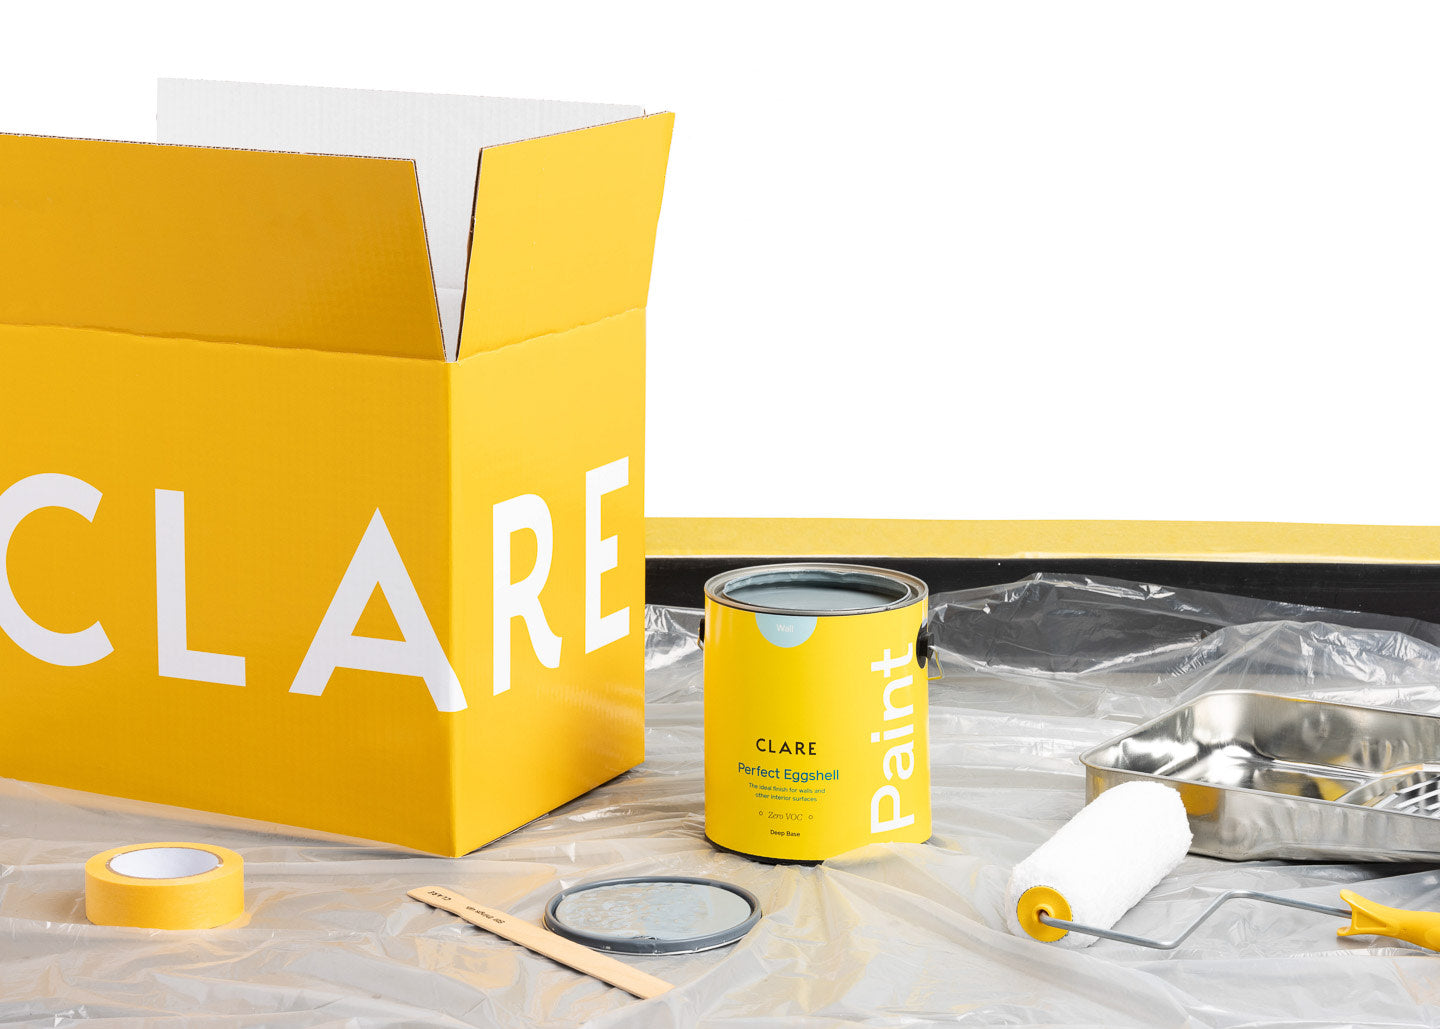 If you're looking to order paint online, here's our ultimate guide! Learn what to expect, how to buy high-quality paint supplies, how much paint you'll need, and more!